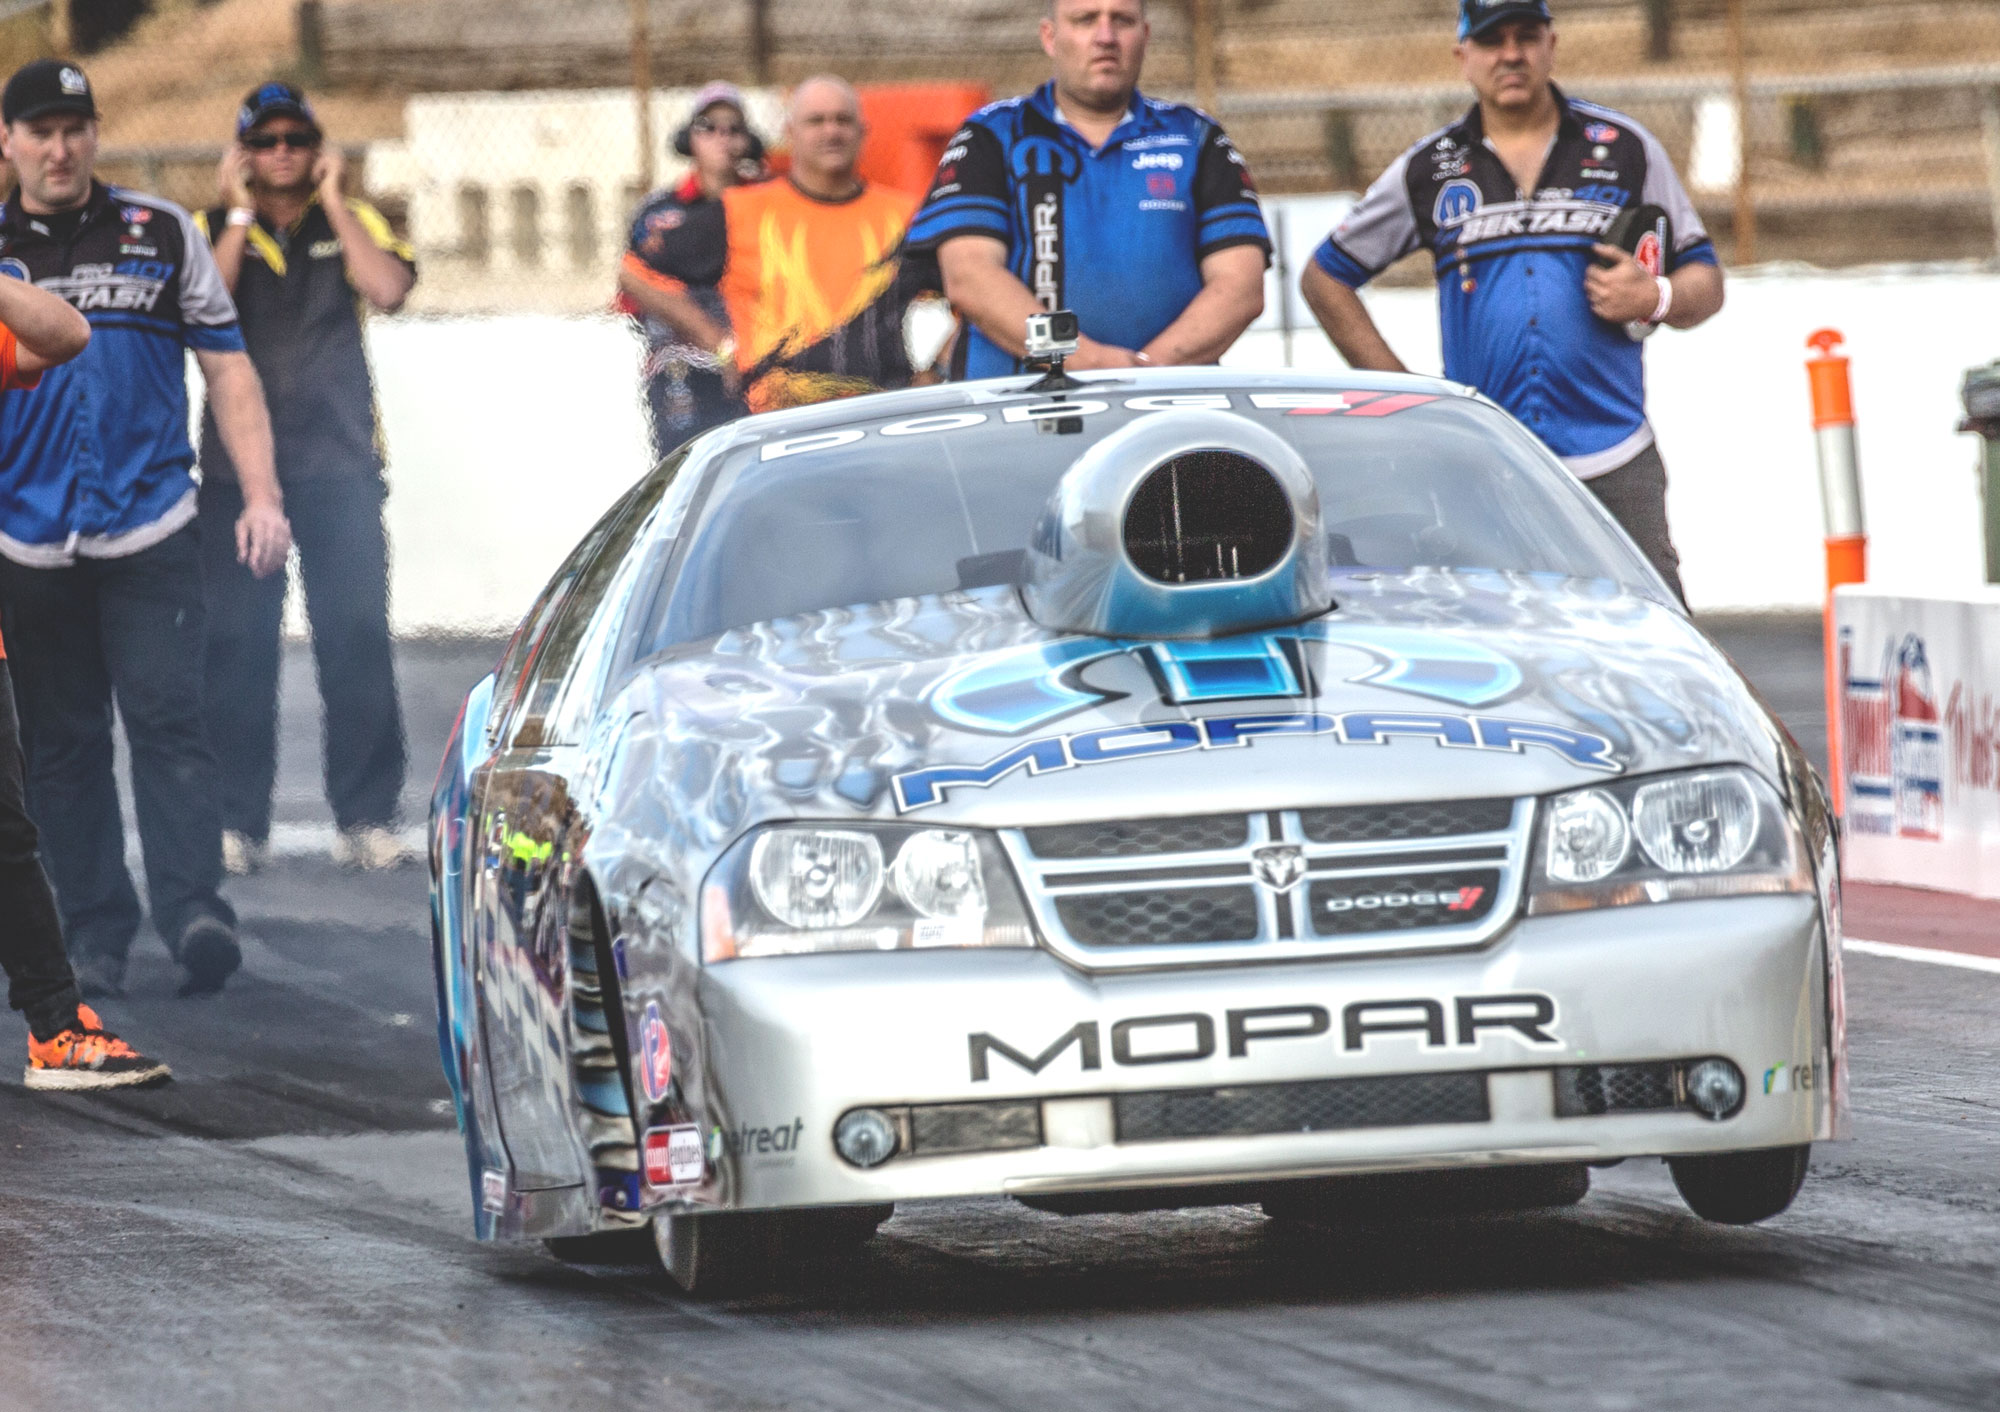 andra-drag-racing-finals-in-adelaide--air-sat-31-march-2017-89212